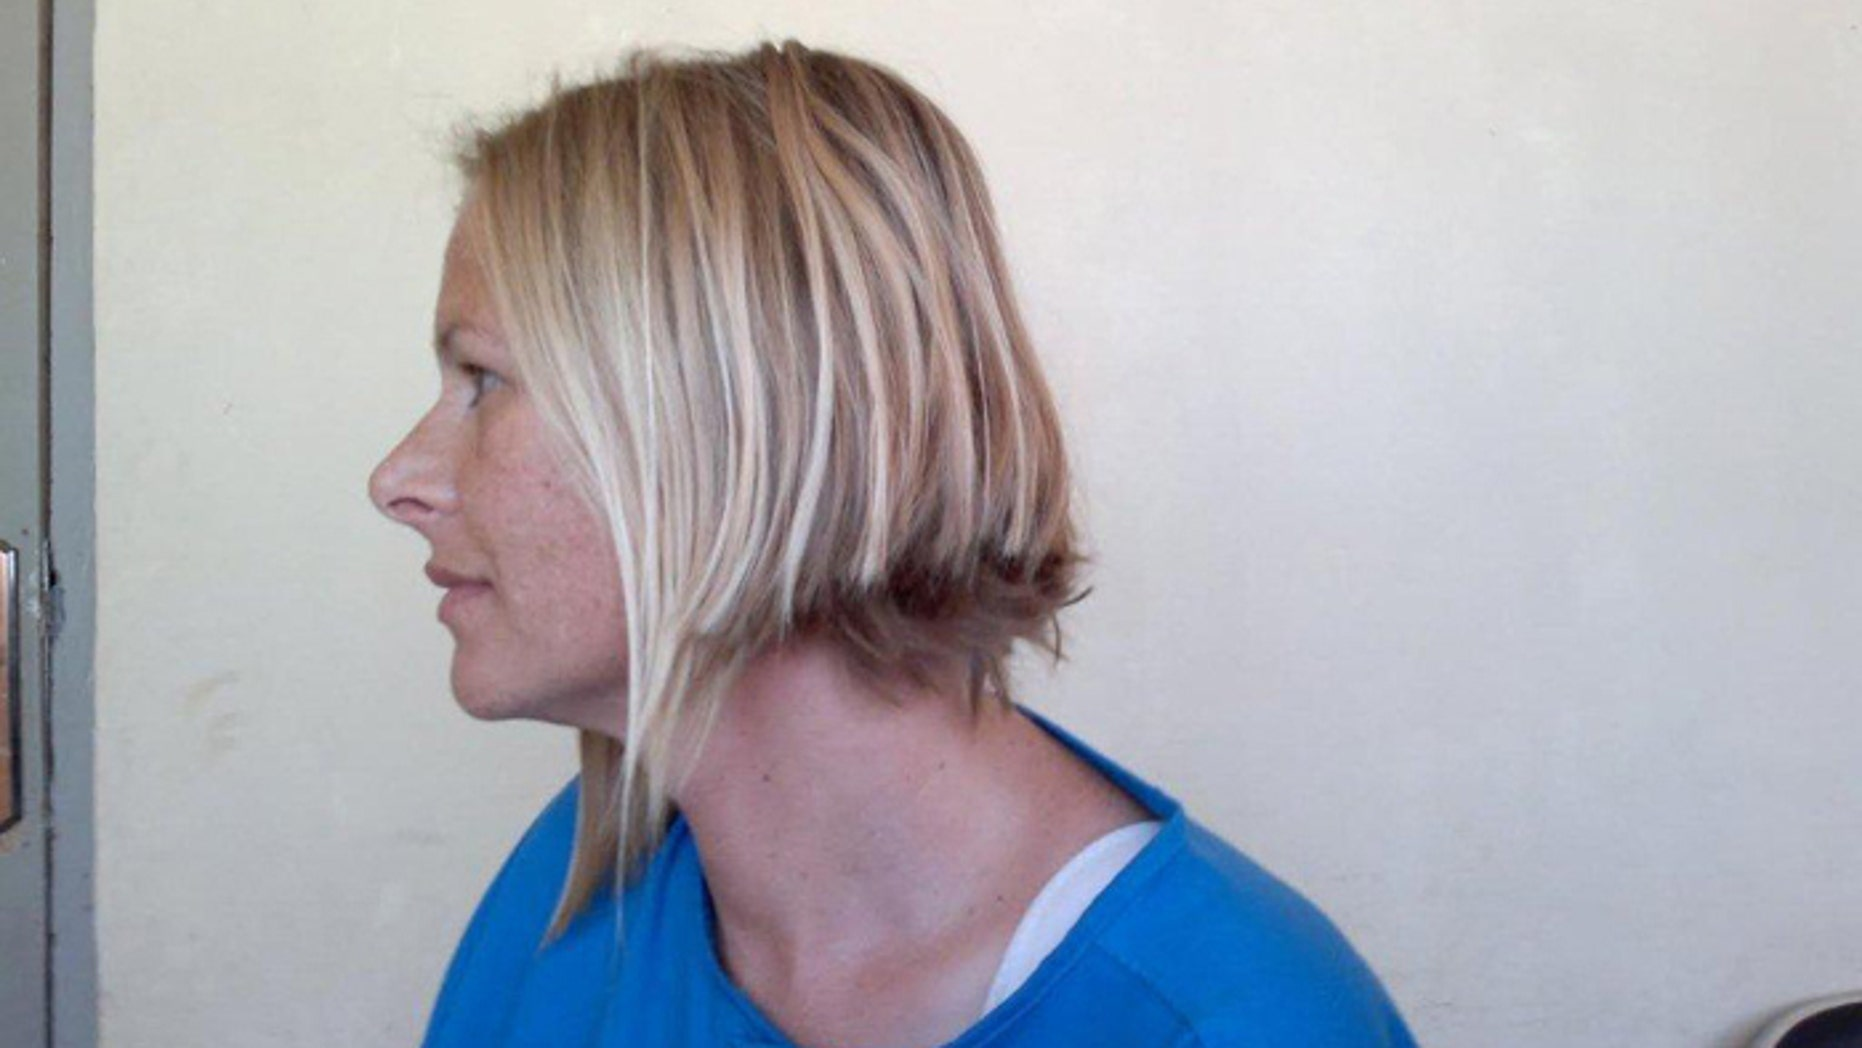 Stacey Addison's was in and out of prison in East Timor for nearly six months as she attempted to retrieve her passport after she was caught in a drug bust.